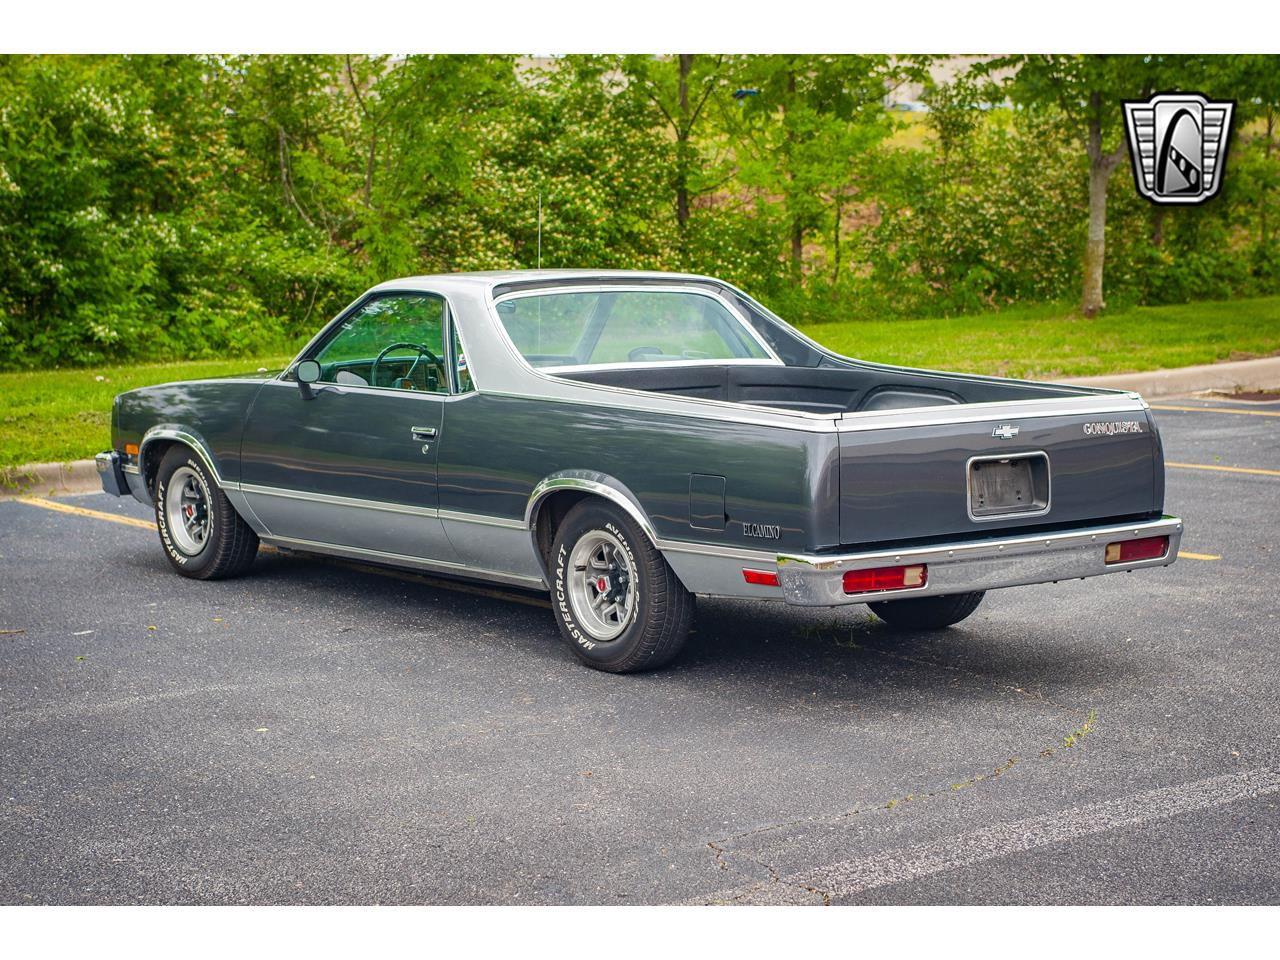 Large Picture of '82 Chevrolet El Camino located in O'Fallon Illinois Offered by Gateway Classic Cars - St. Louis - QB9A